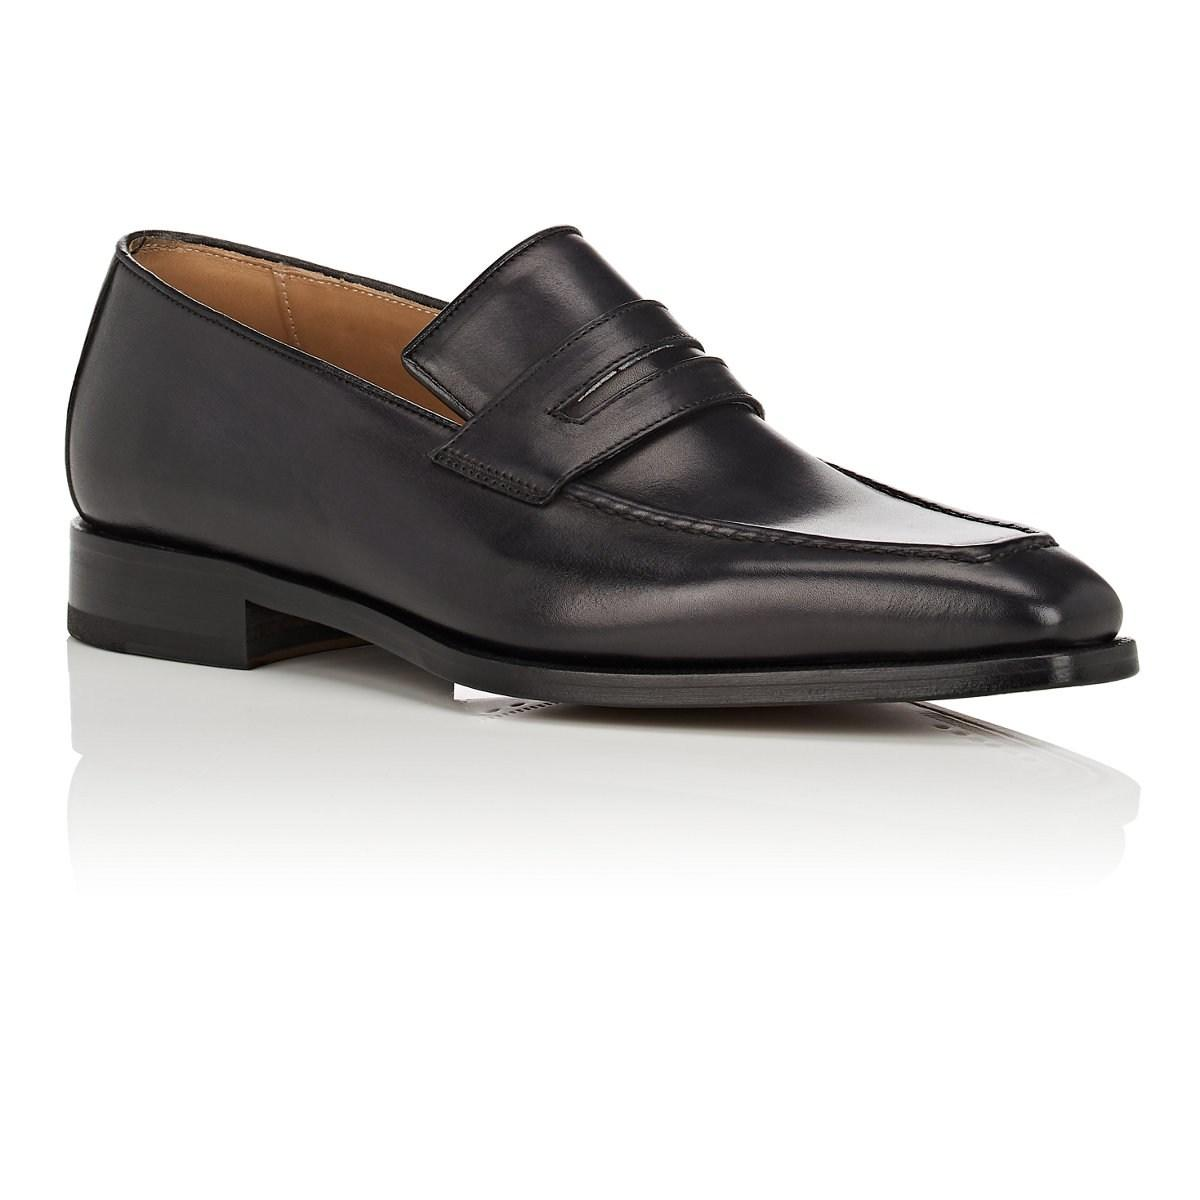 465d5ad16c084 Barneys New York - Black Burnished Leather Penny Loafers for Men - Lyst.  View fullscreen